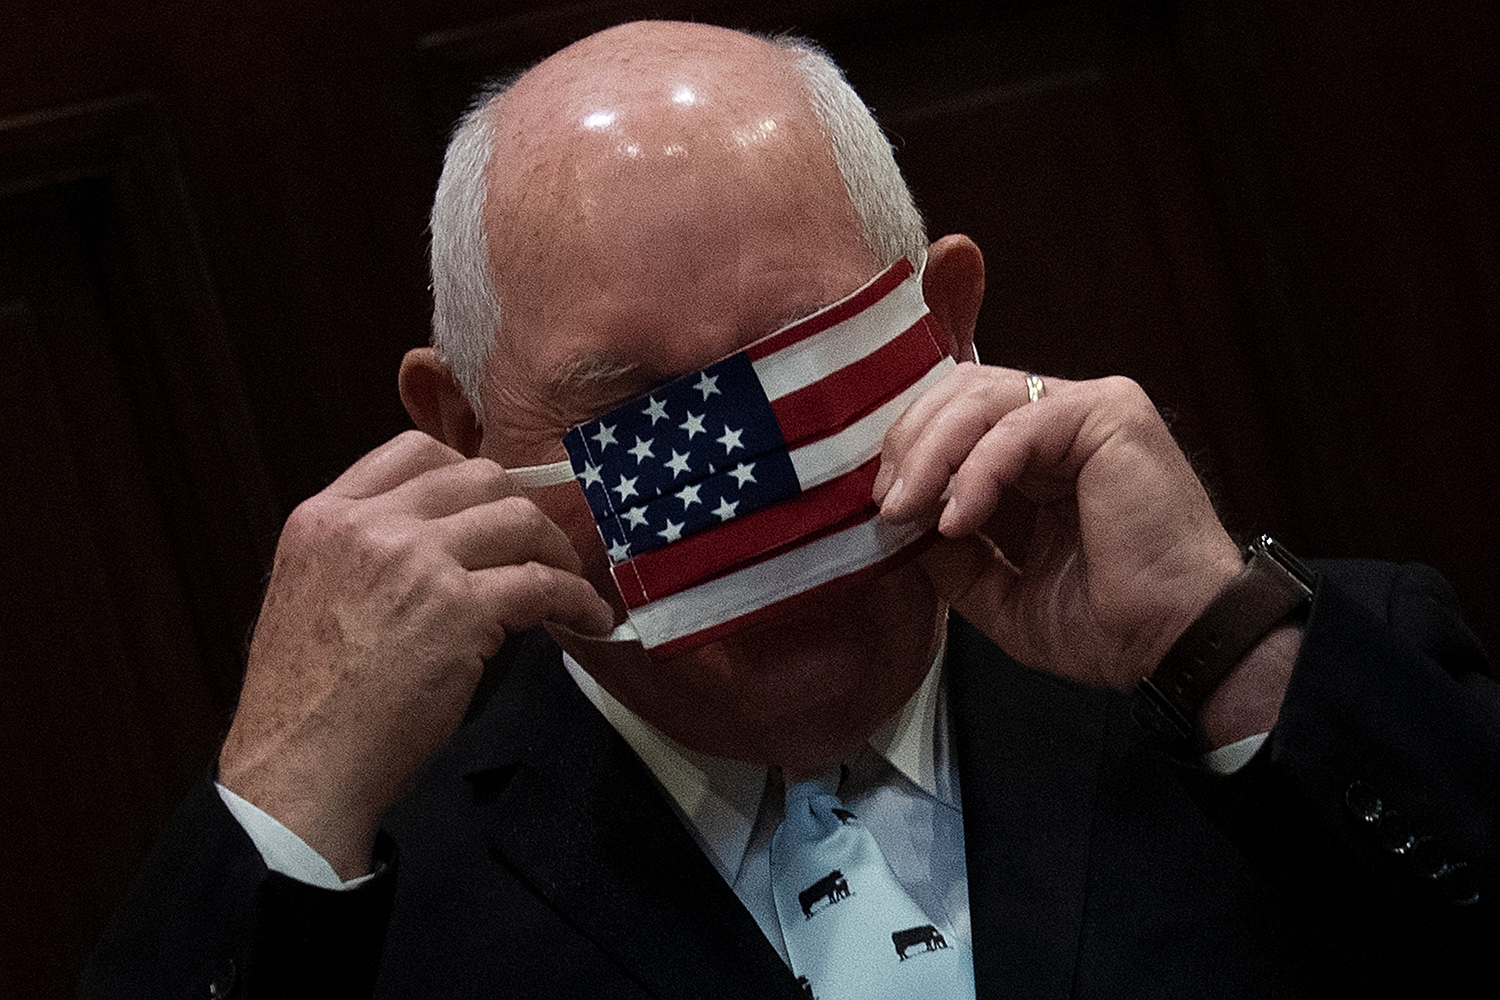 U.S. Secretary of Agriculture Sonny Perdue puts on a face mask in a meeting with the president about the country's food supply in the Roosevelt Room of the White House on May 19. BRENDAN SMIALOWSKI/AFP via Getty Images